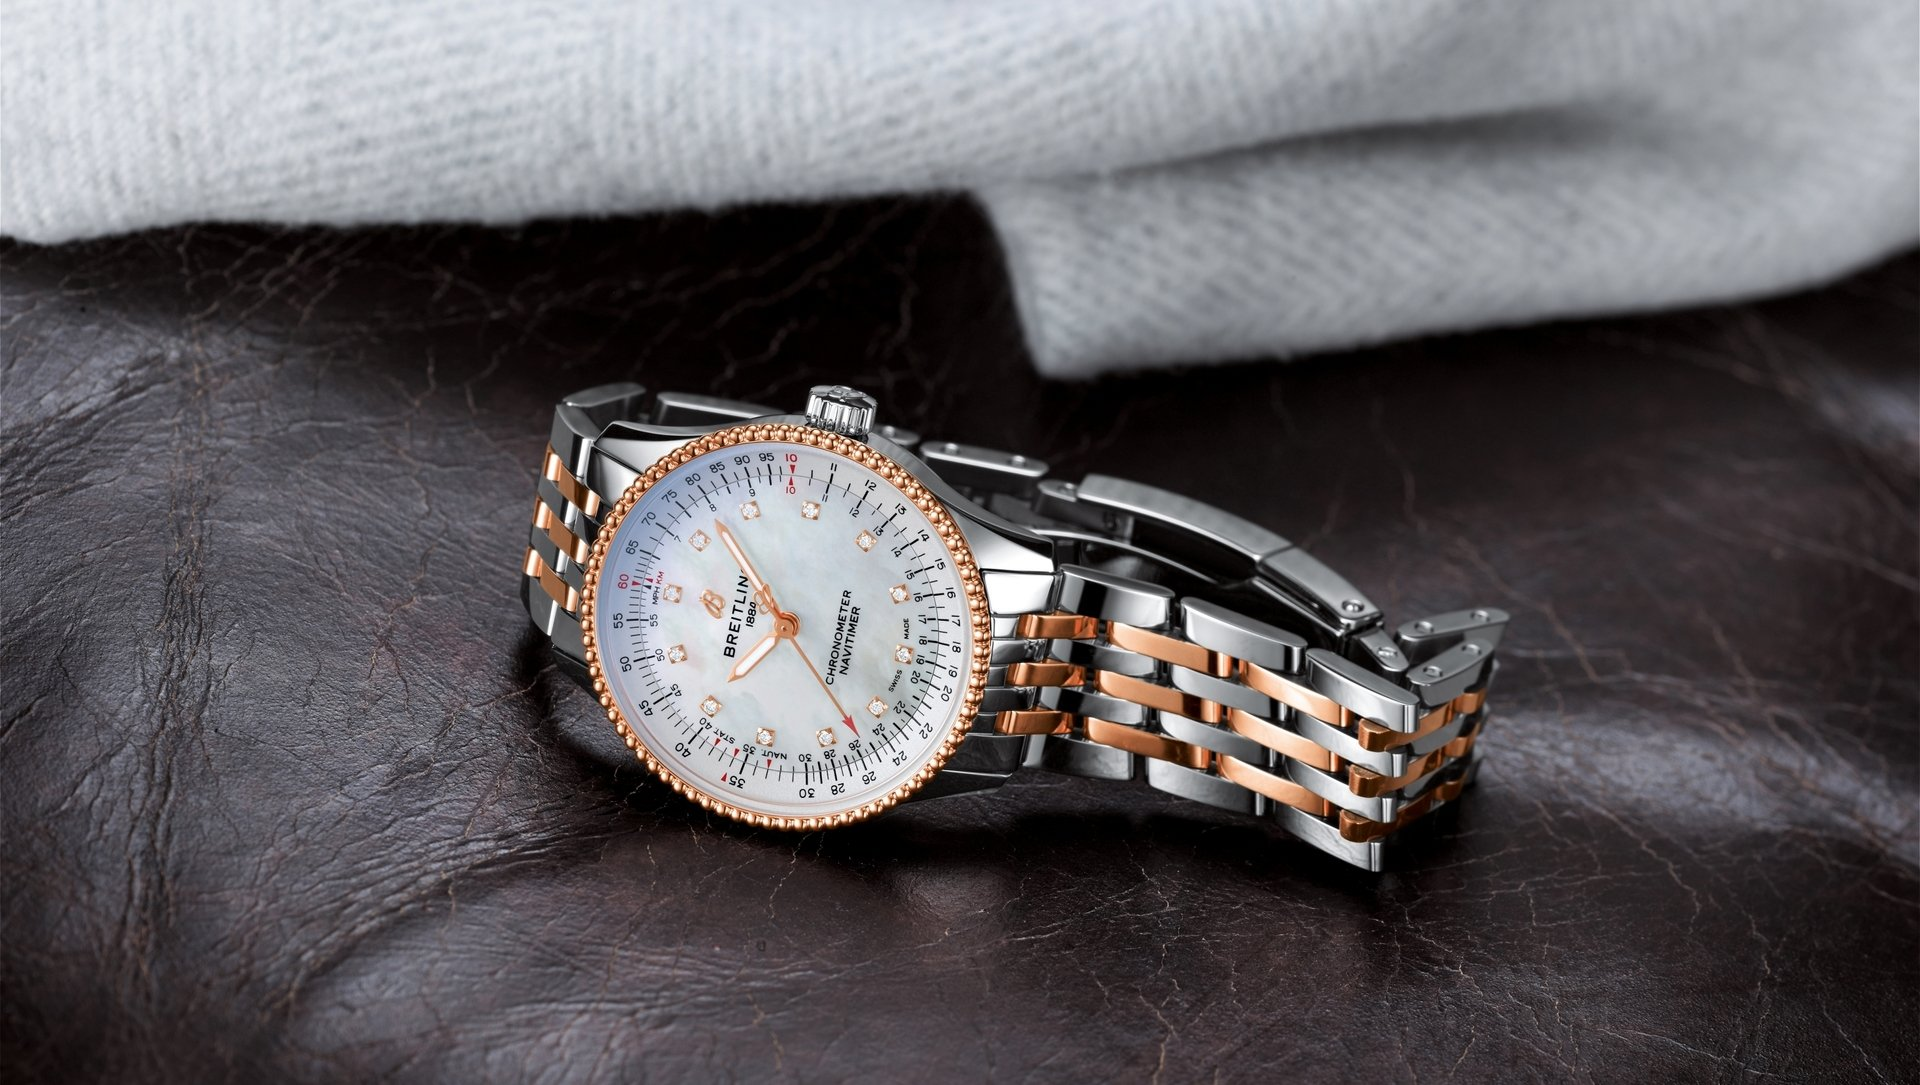 11_two-tone-navitimer-automatic-35-with-a-white-mother-of-pearl-dial-with-diamond-hour-markers-and-a-luxurious-18-k-red-gold-bezel.jpg